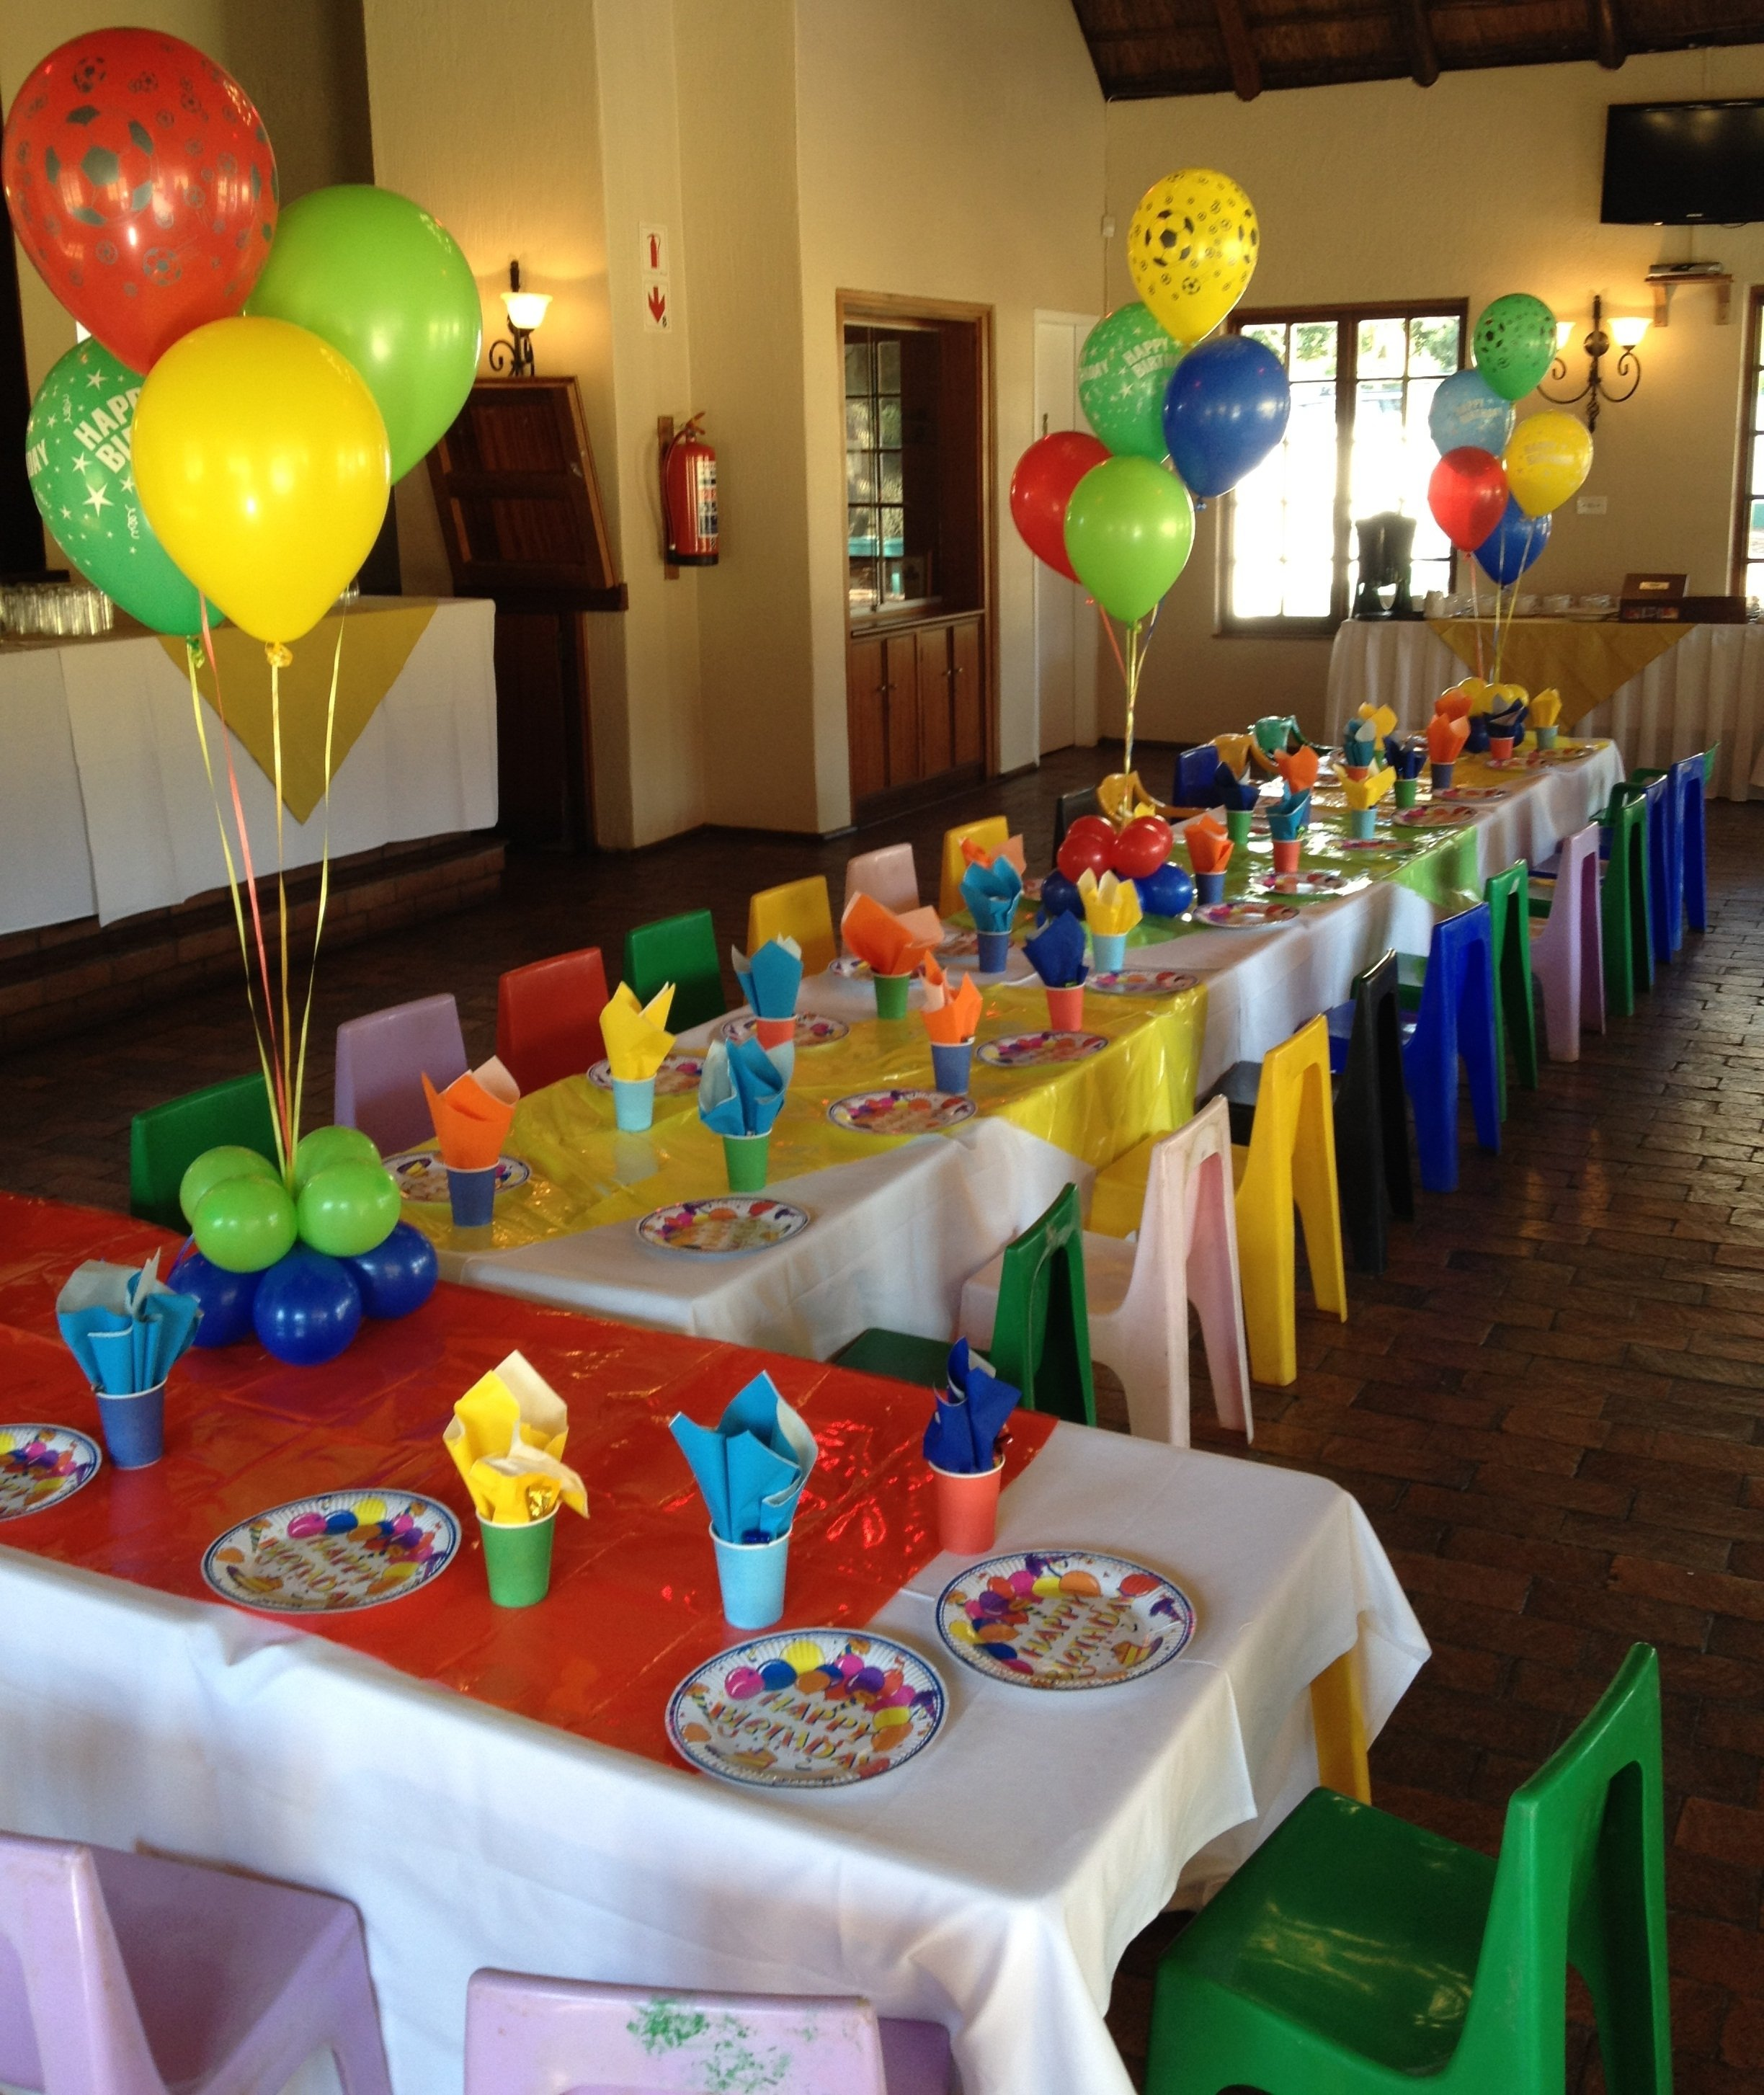 10 Lovely Sesame Street Party Ideas Decorations good colors for sesame street party or lego party party ideas 1 2020